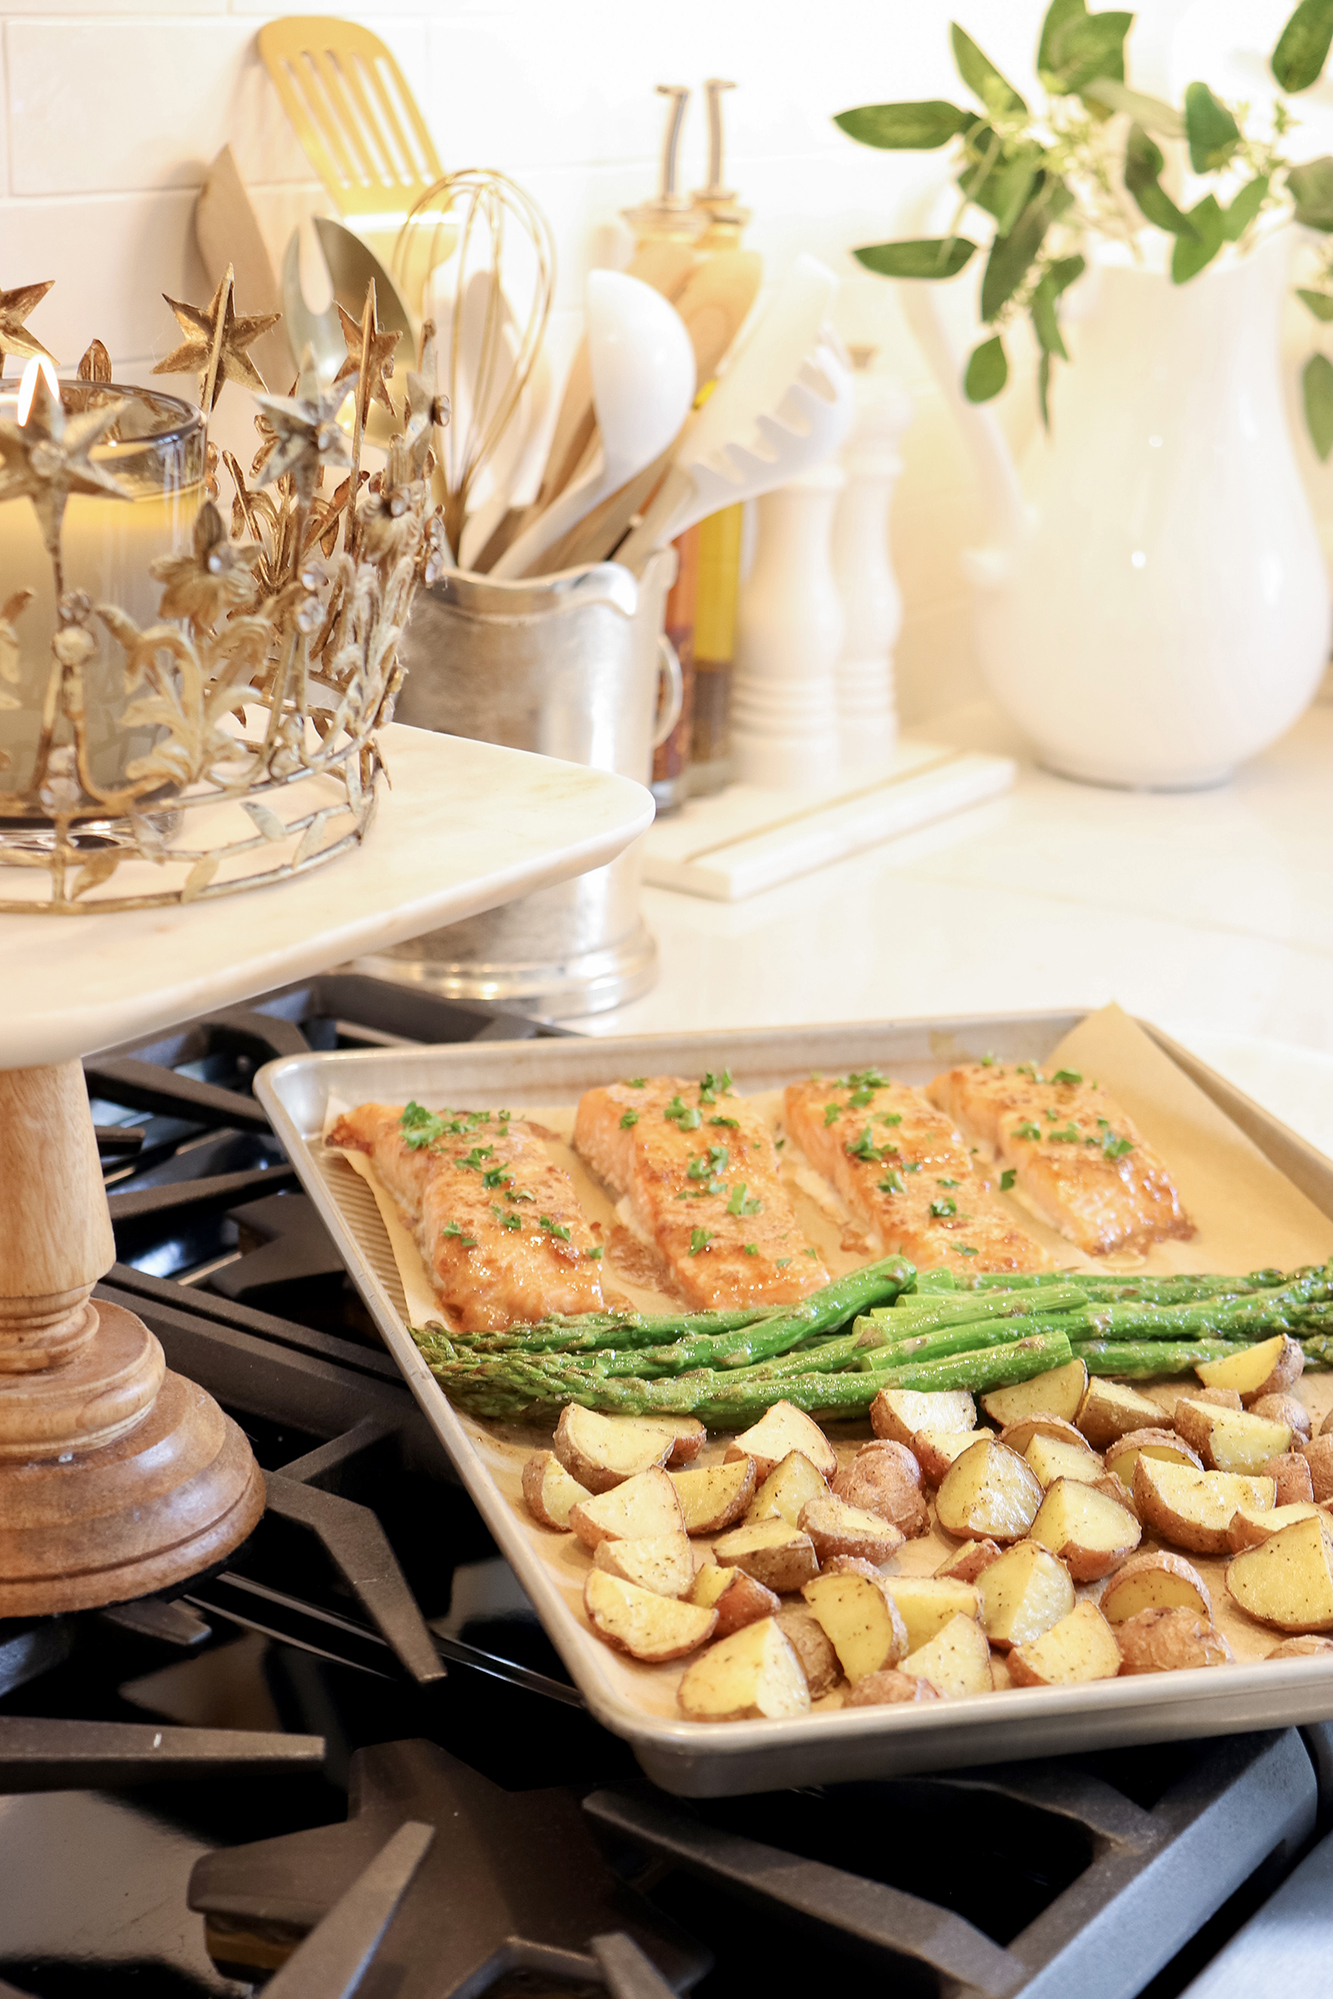 One-Pan Healthy Salmon & Veggies Recipe - Perfect dinner idea for any night of the week! Delicious and healthy option for the whole family.